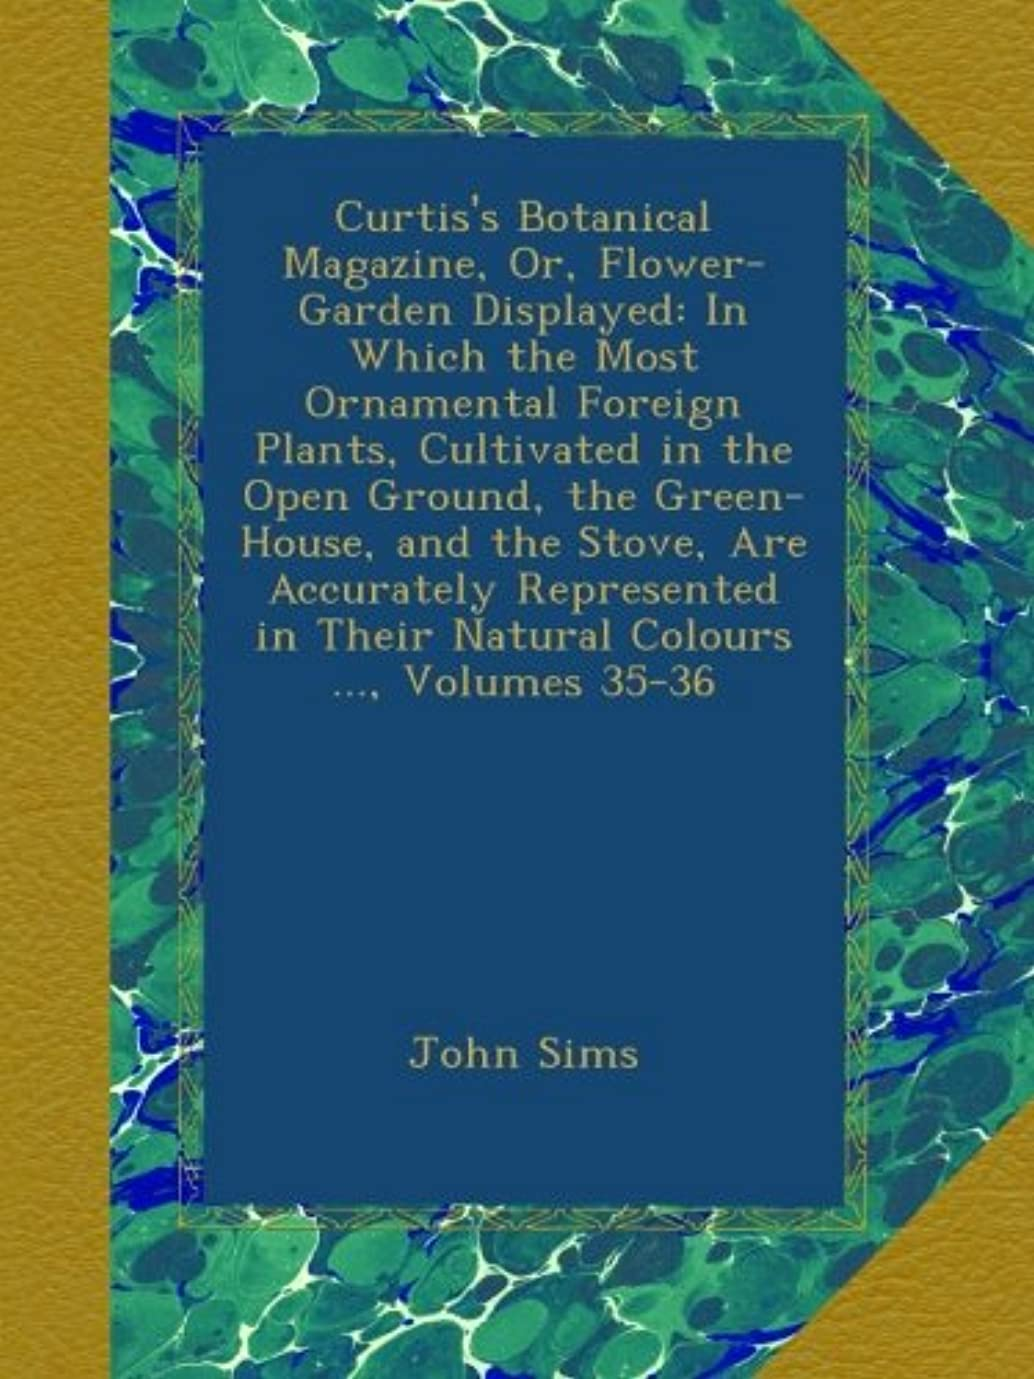 閉じ込める偉業変化するCurtis's Botanical Magazine, Or, Flower-Garden Displayed: In Which the Most Ornamental Foreign Plants, Cultivated in the Open Ground, the Green-House, and the Stove, Are Accurately Represented in Their Natural Colours ..., Volumes 35-36